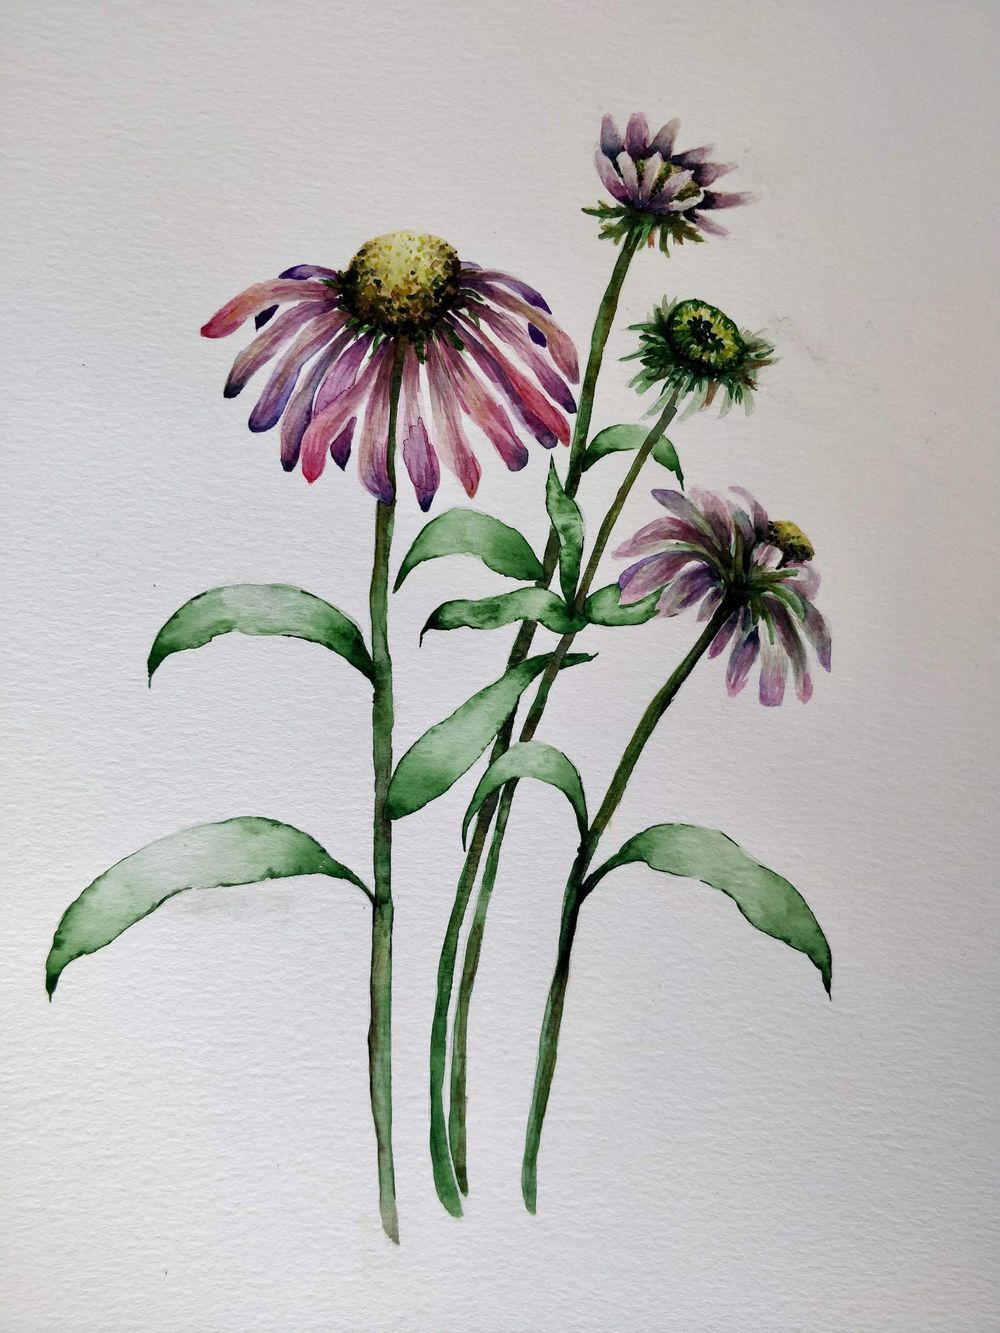 Paint with Me: Vintage-Inspired Botanical Illustration Using Mixed Media - image 4 - student project